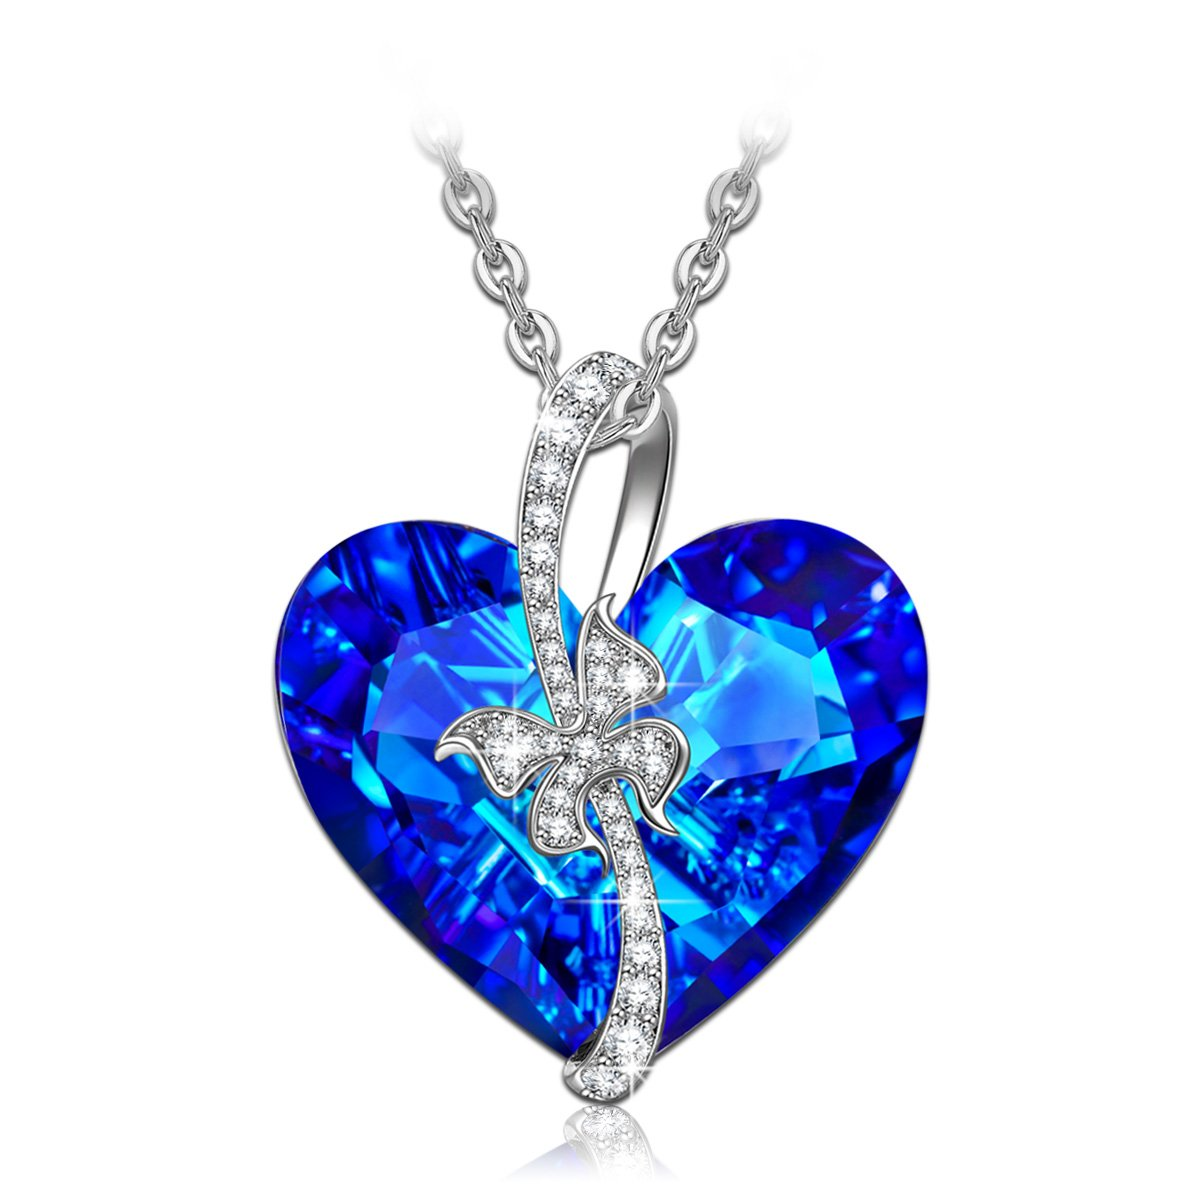 QIANSE Gifts for Women Blue Sapphire Love Heart Necklace Swarovski Crystal Jewelry Necklaces for Women Girls Birthday Gifts for Girlfriend Wife for Her for Women